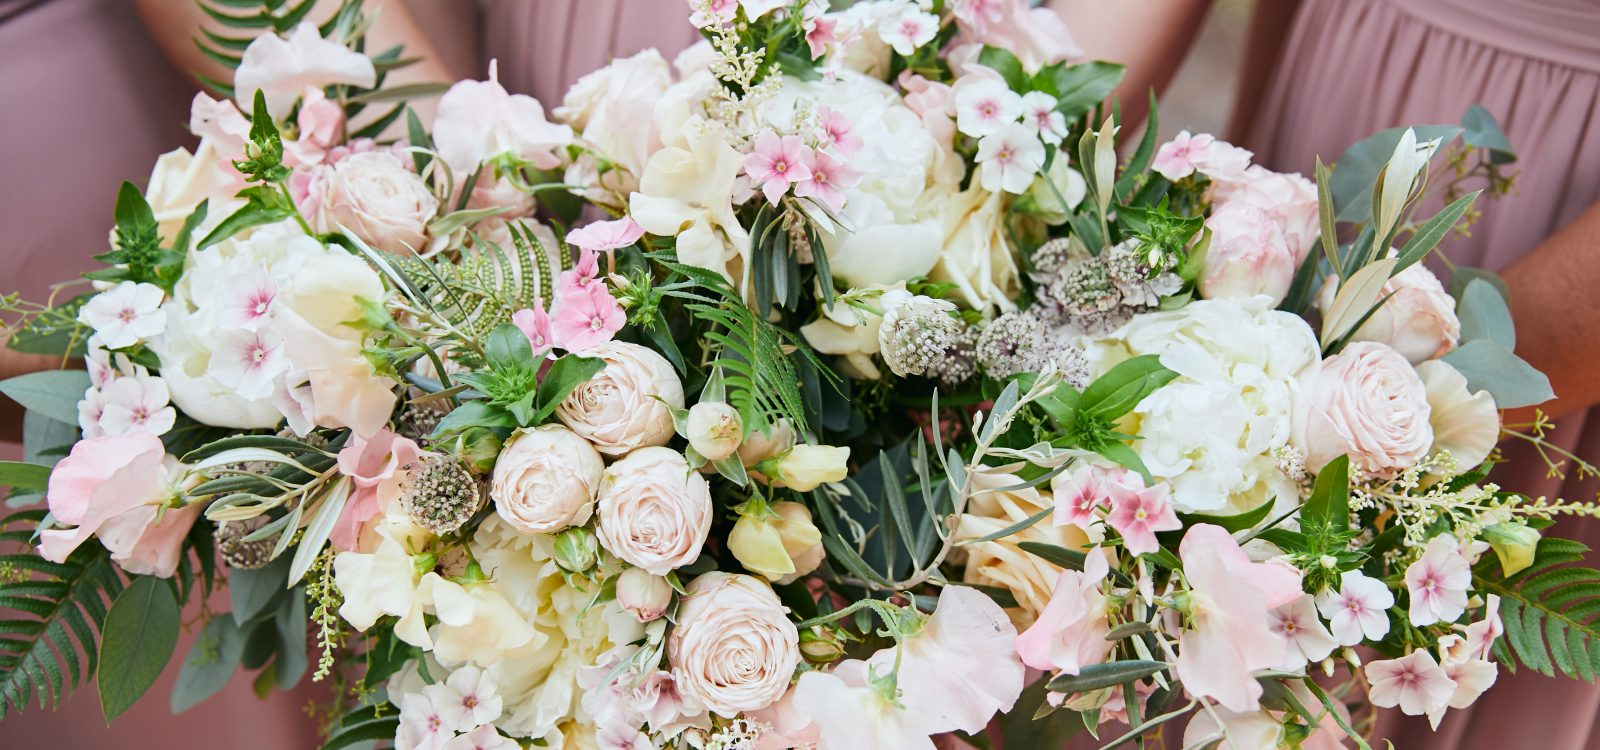 Whidbey Island Wedding Flowers at Fireseed Catering by Tobey Nelson Events image by Clara Ganey Photography (9)